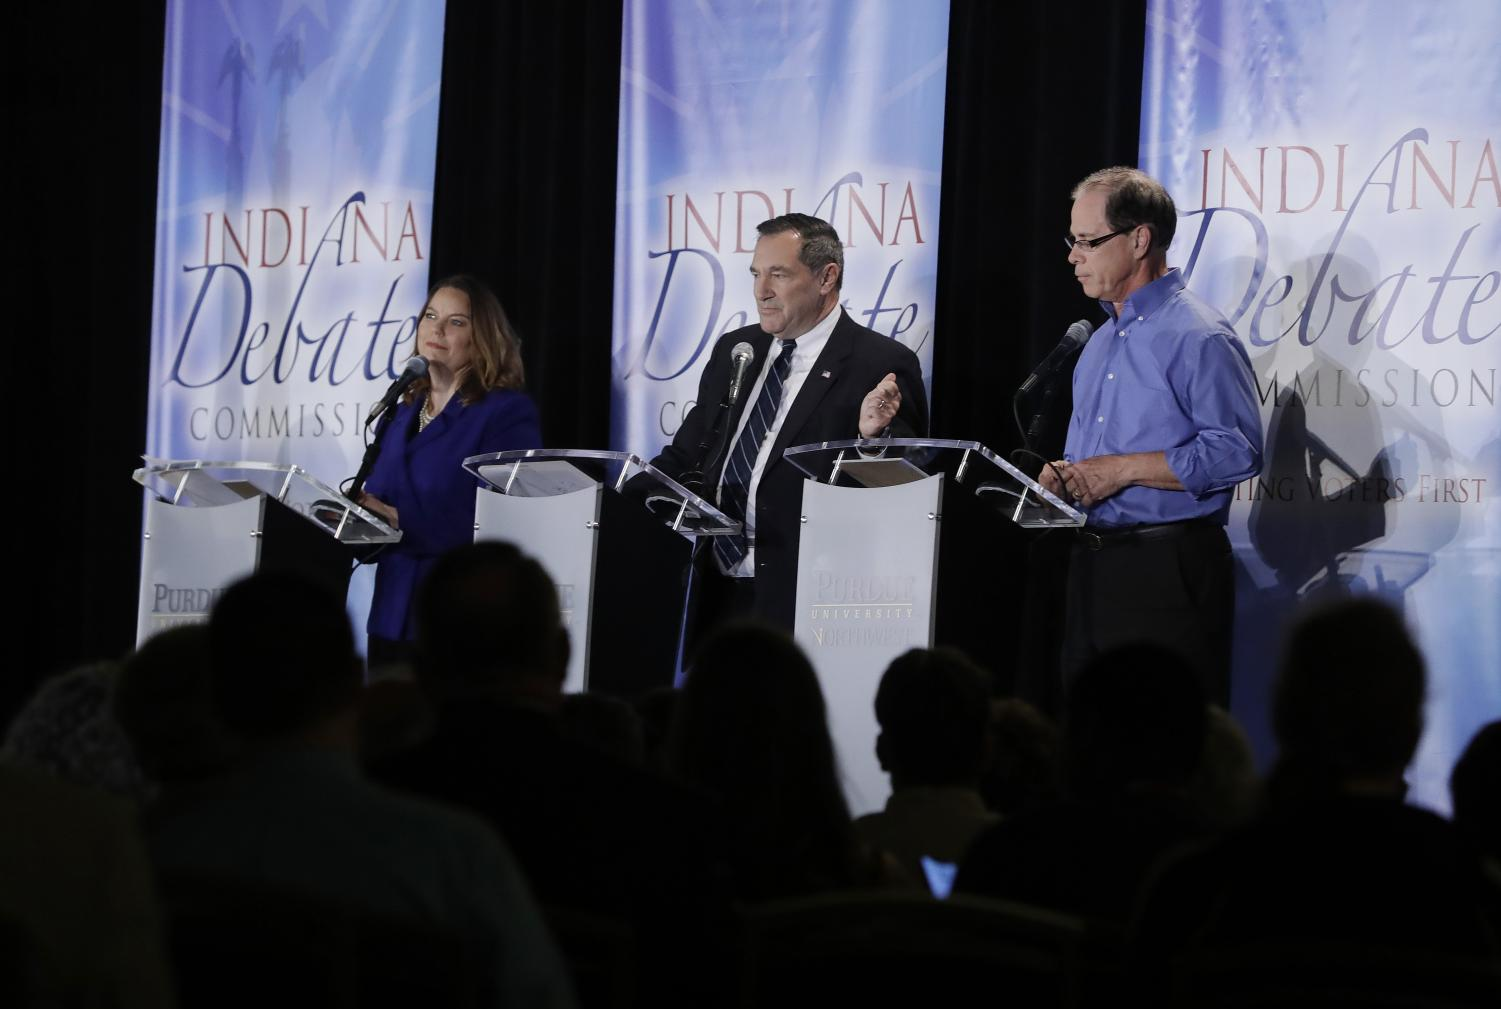 The three candidates running against each other debate topics of public interest on Oct. 8.